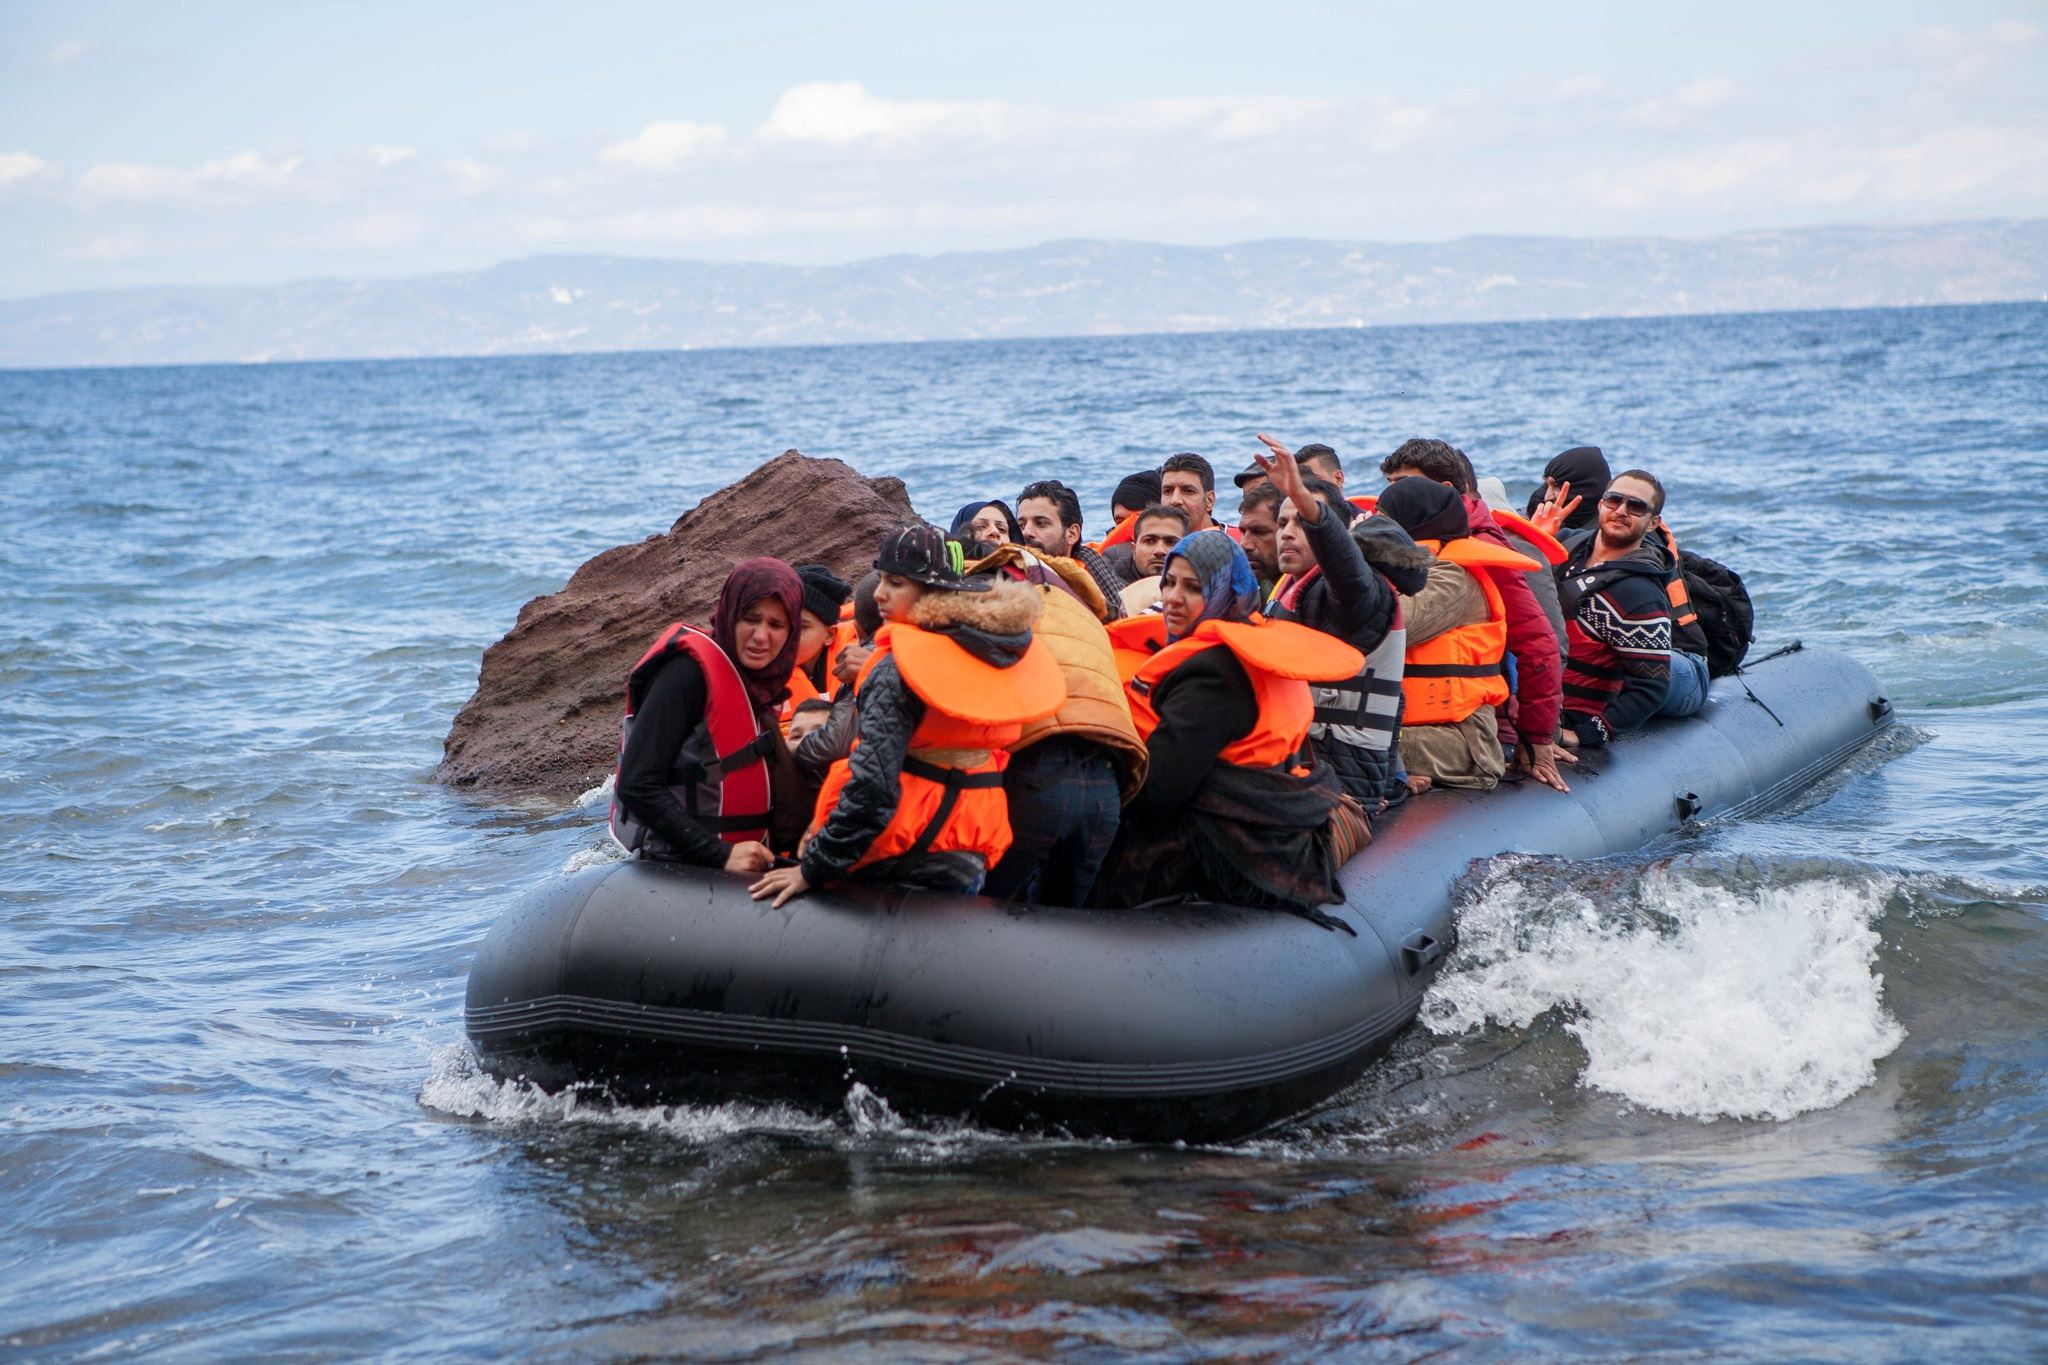 Refugees fleeing to Europe face continued roadblocks